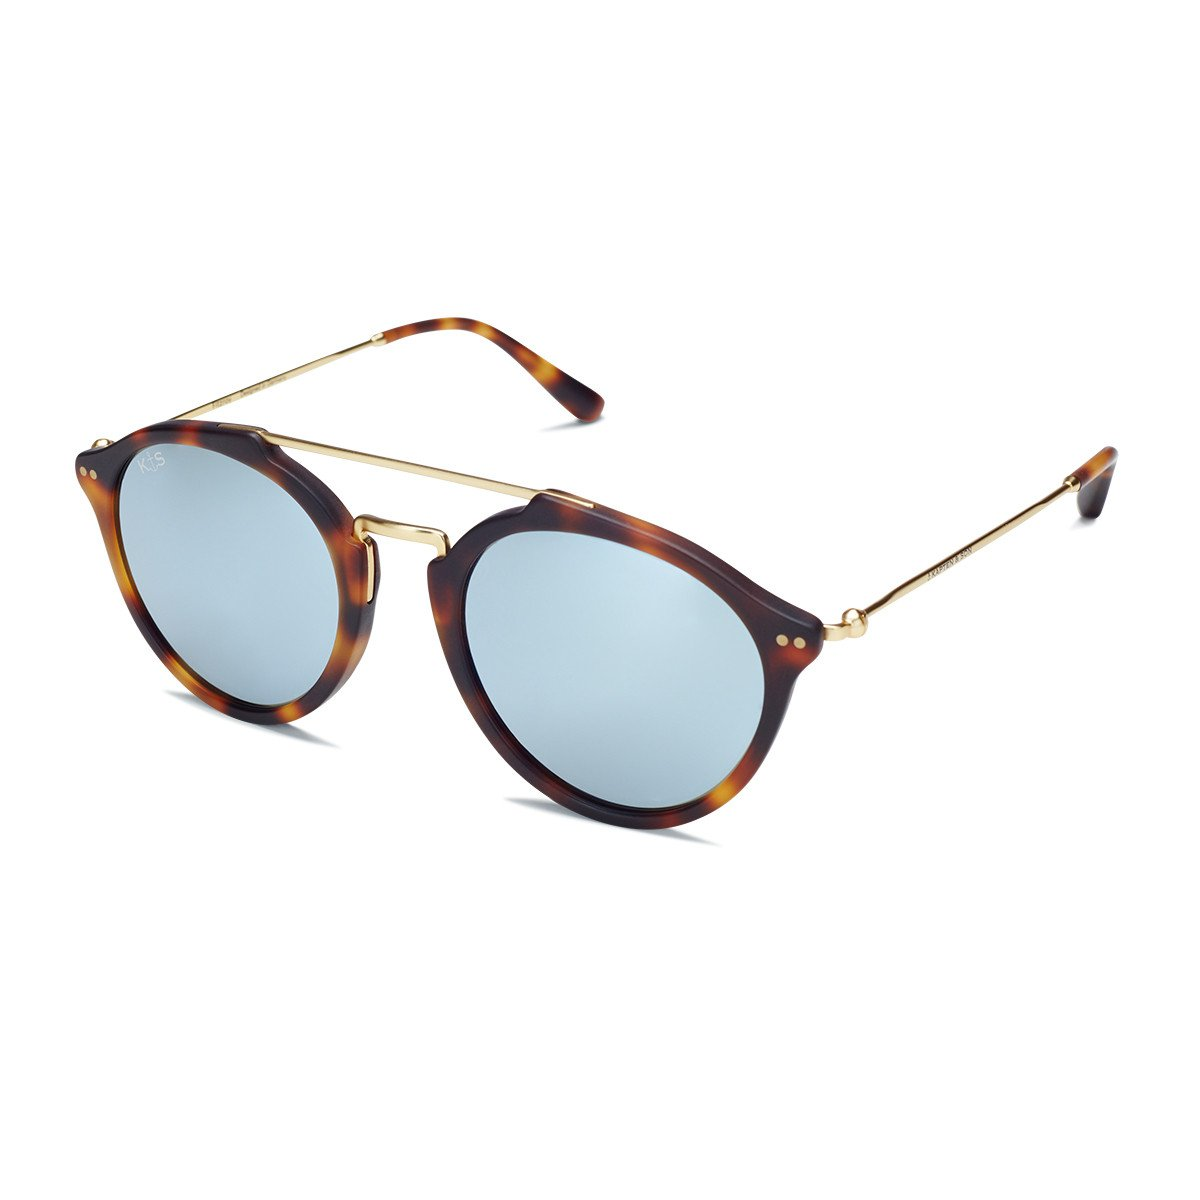 Fitzroy Matt Tortoise Blue Mirrored